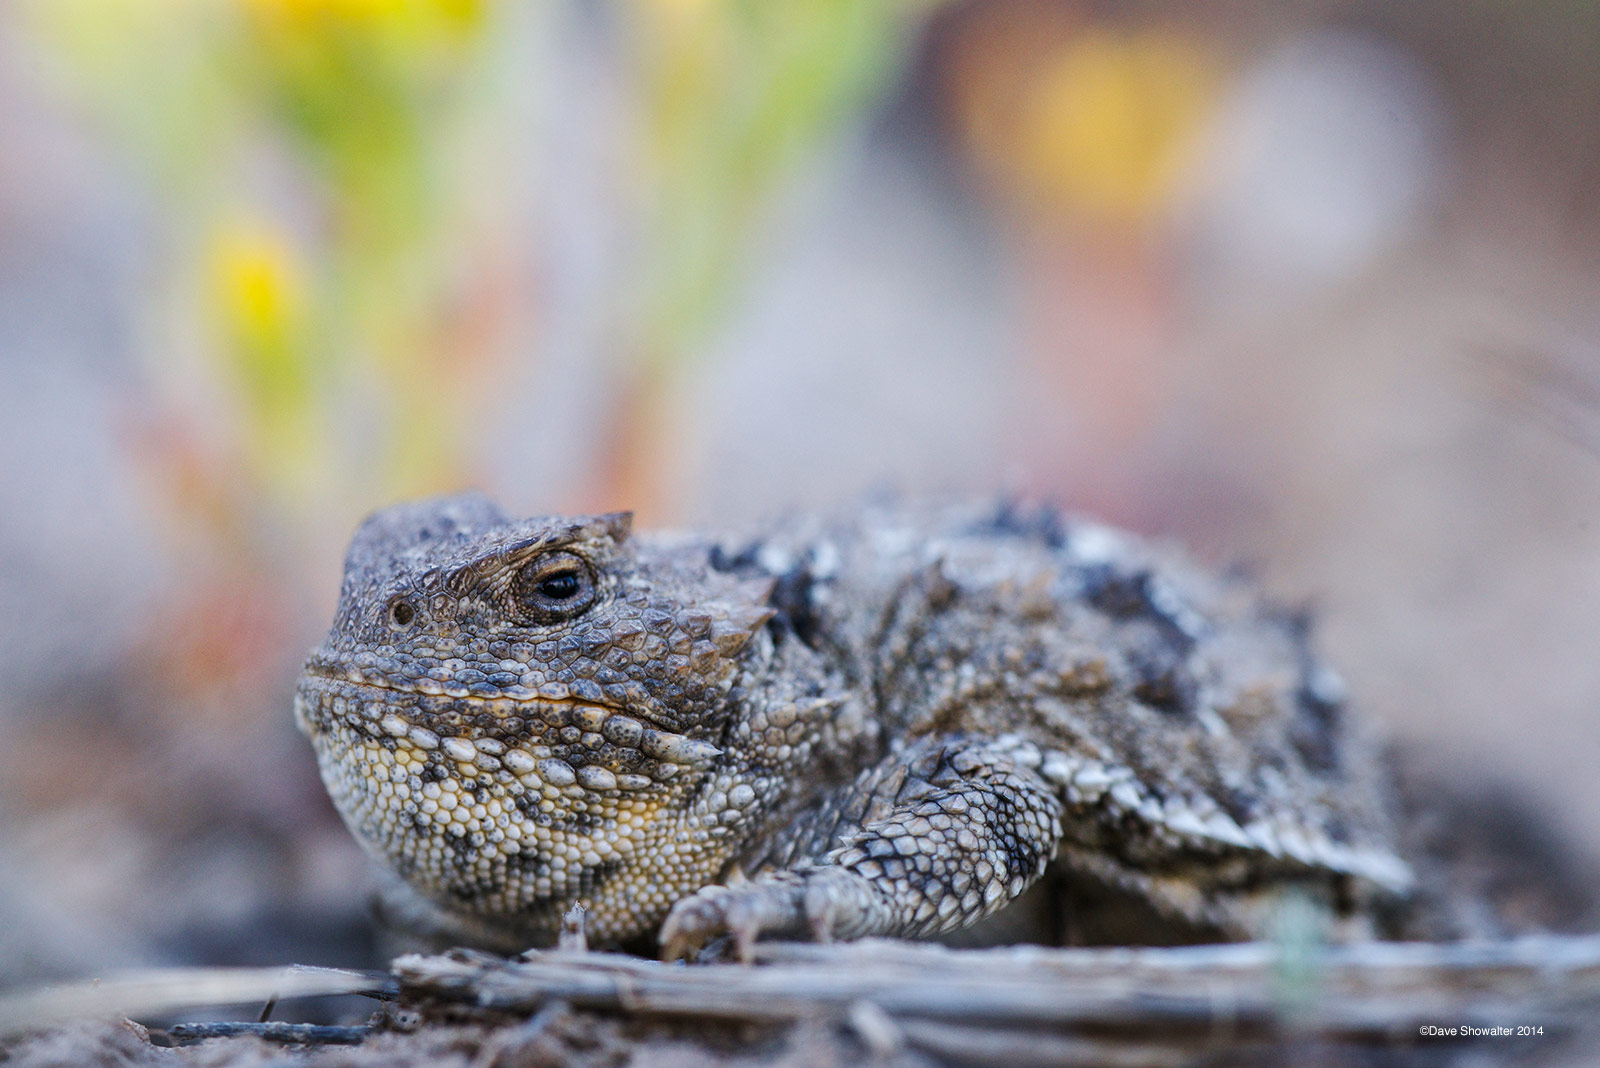 shirley basin, greater short-horned lizard, photo